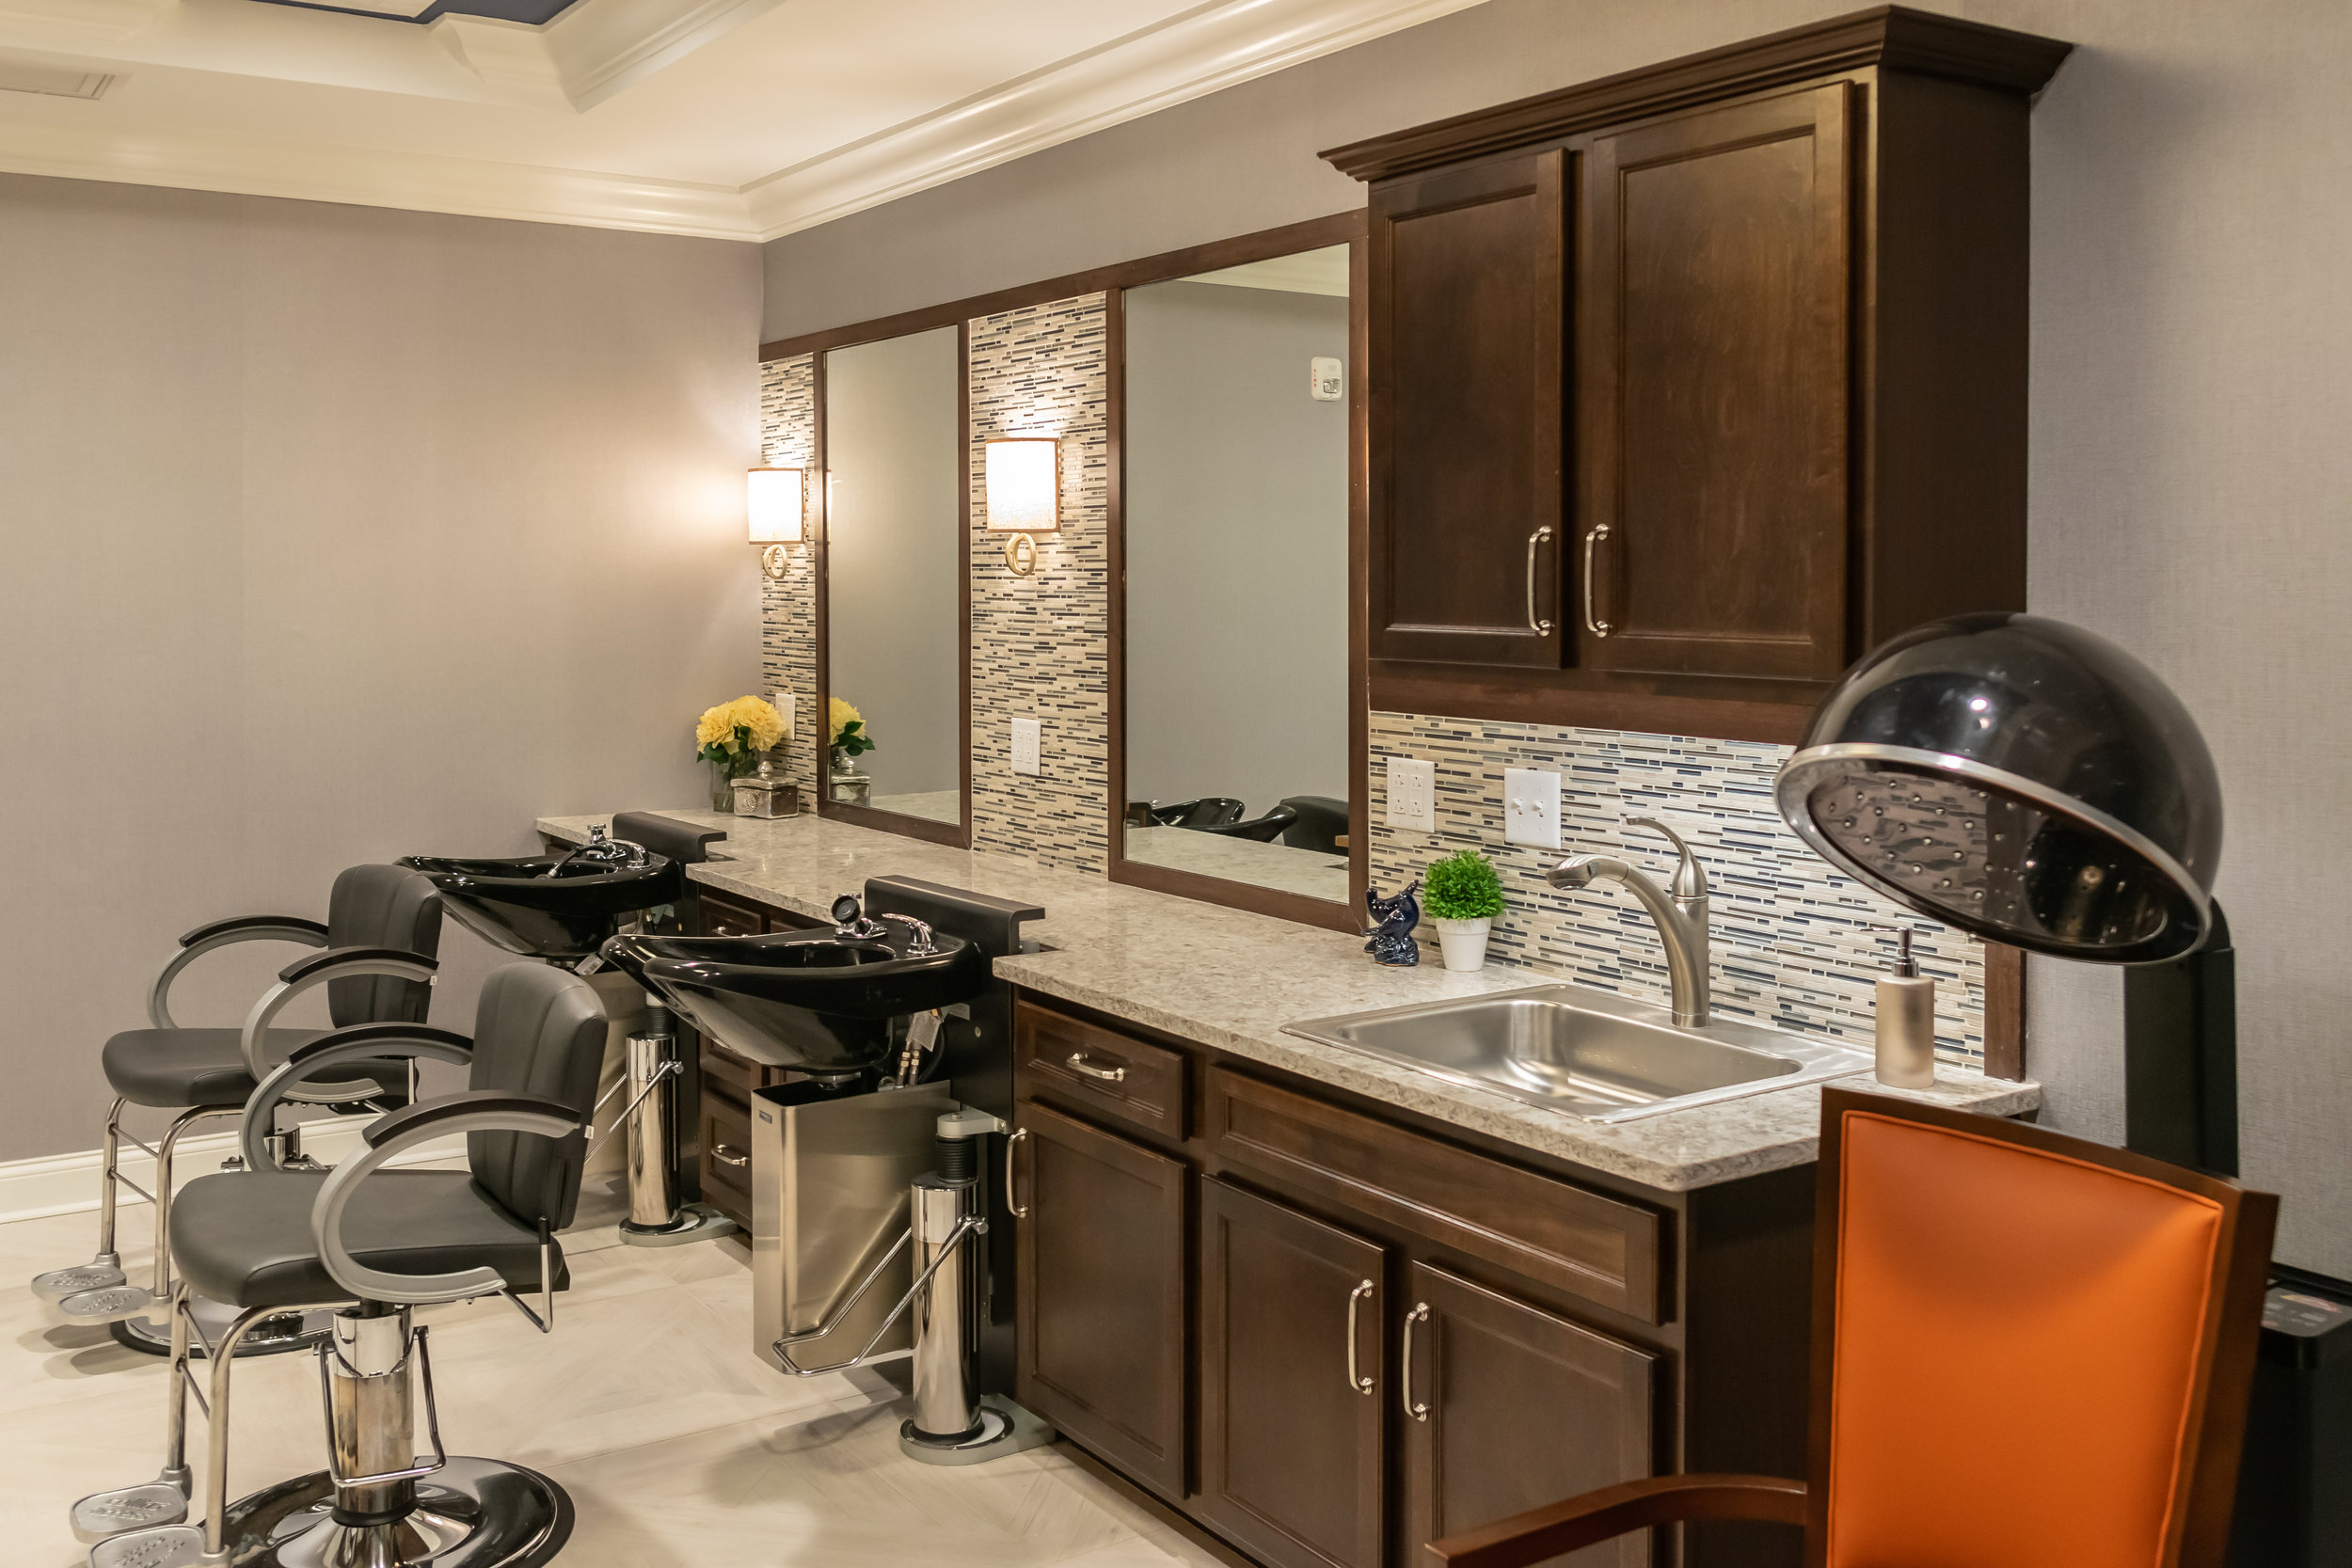 Salon. The Chelsea Senior Living Facility Built by March Associates Construction. We build luxury residential buildings.